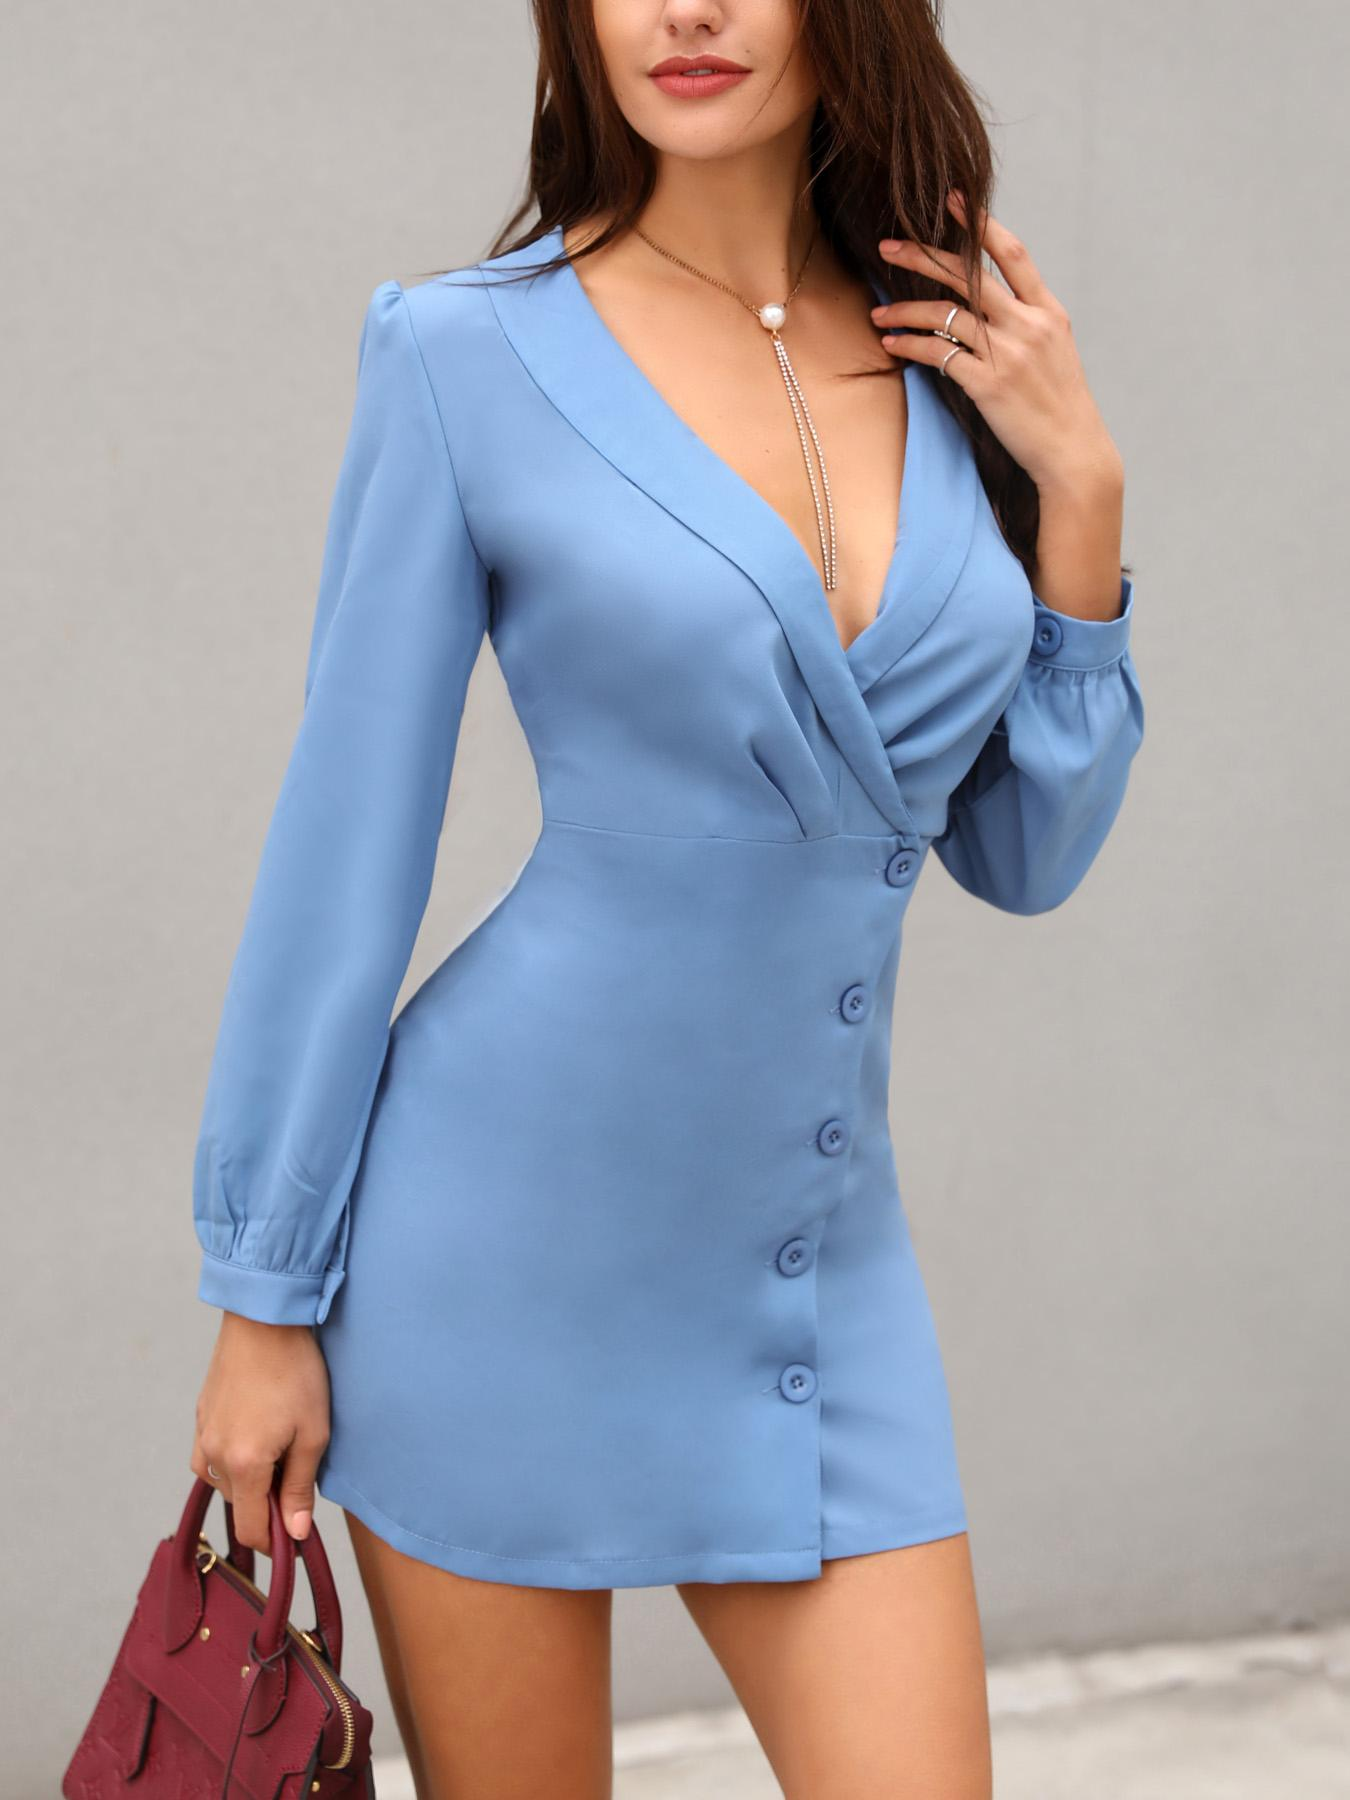 joyshoetique / Solid Deep V Button Design Blazer Dress